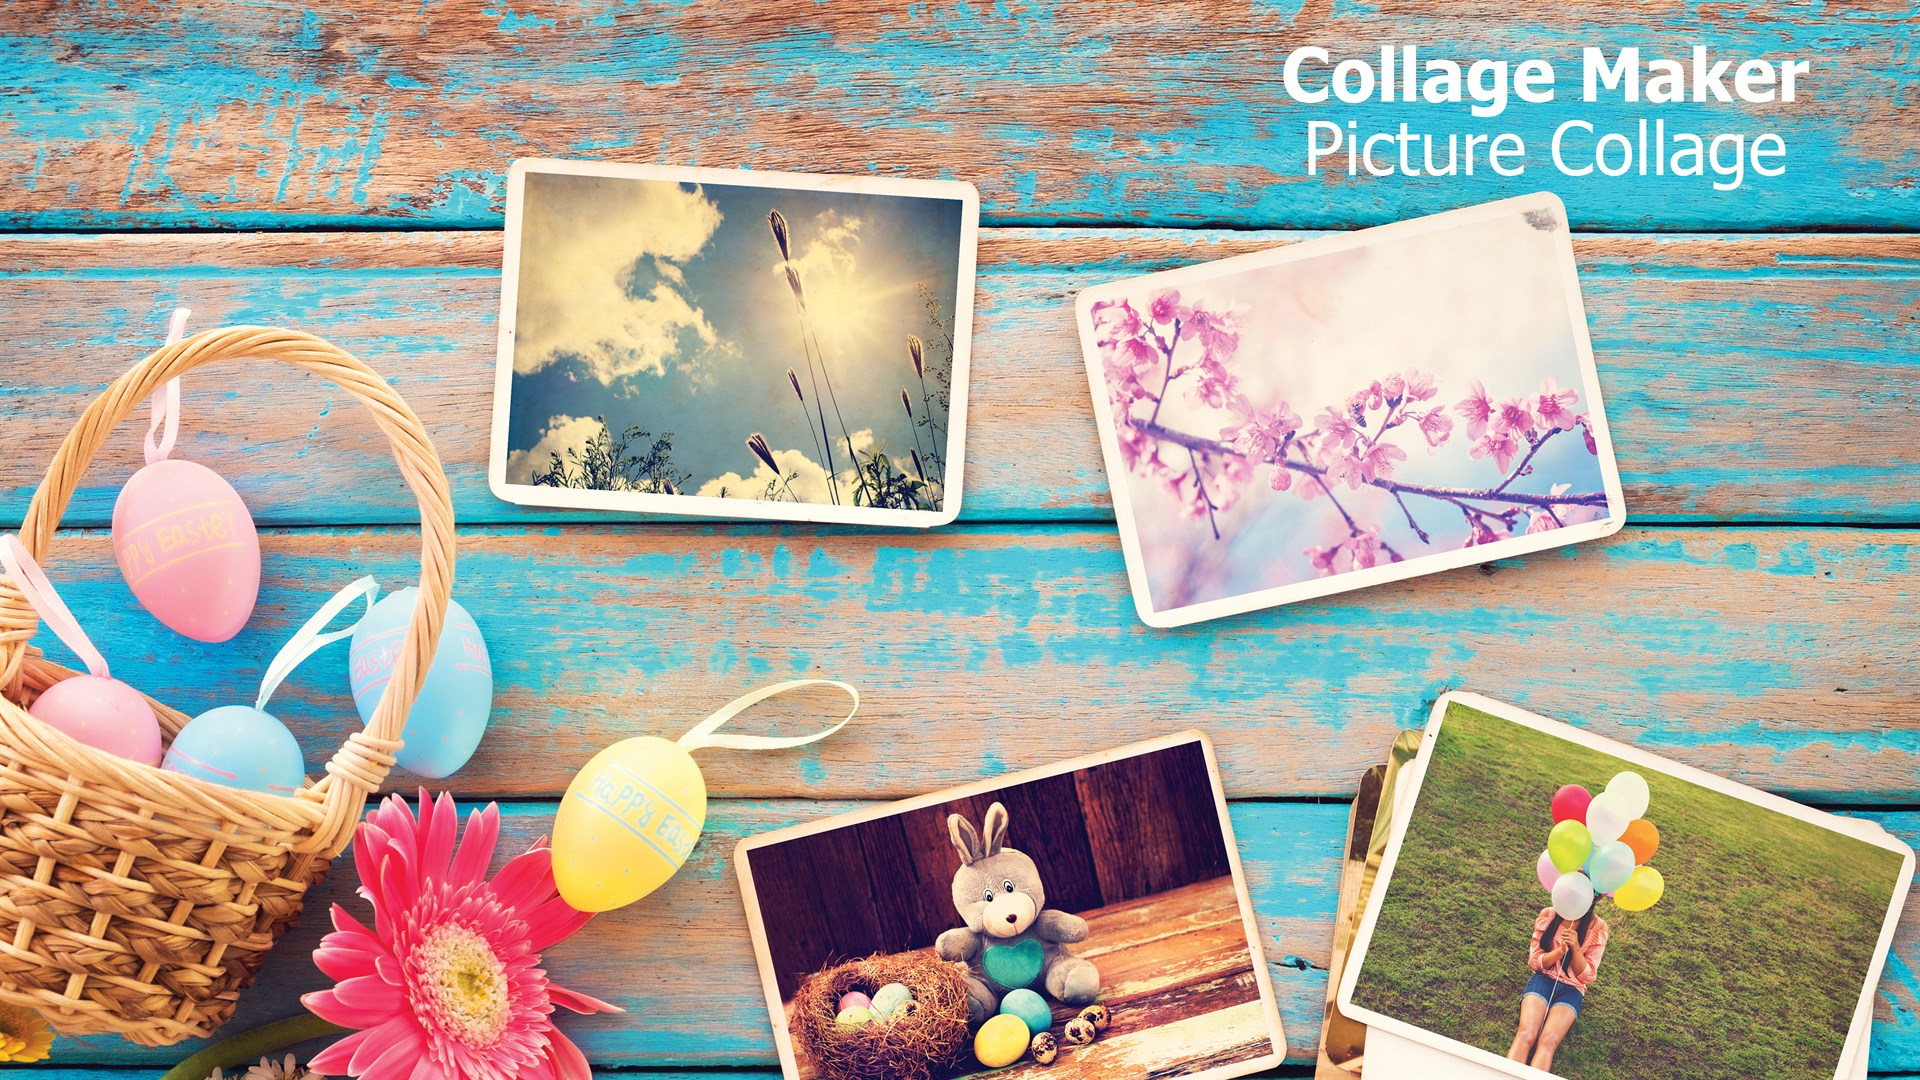 collage maker templates free download - get collage maker picture collage microsoft store